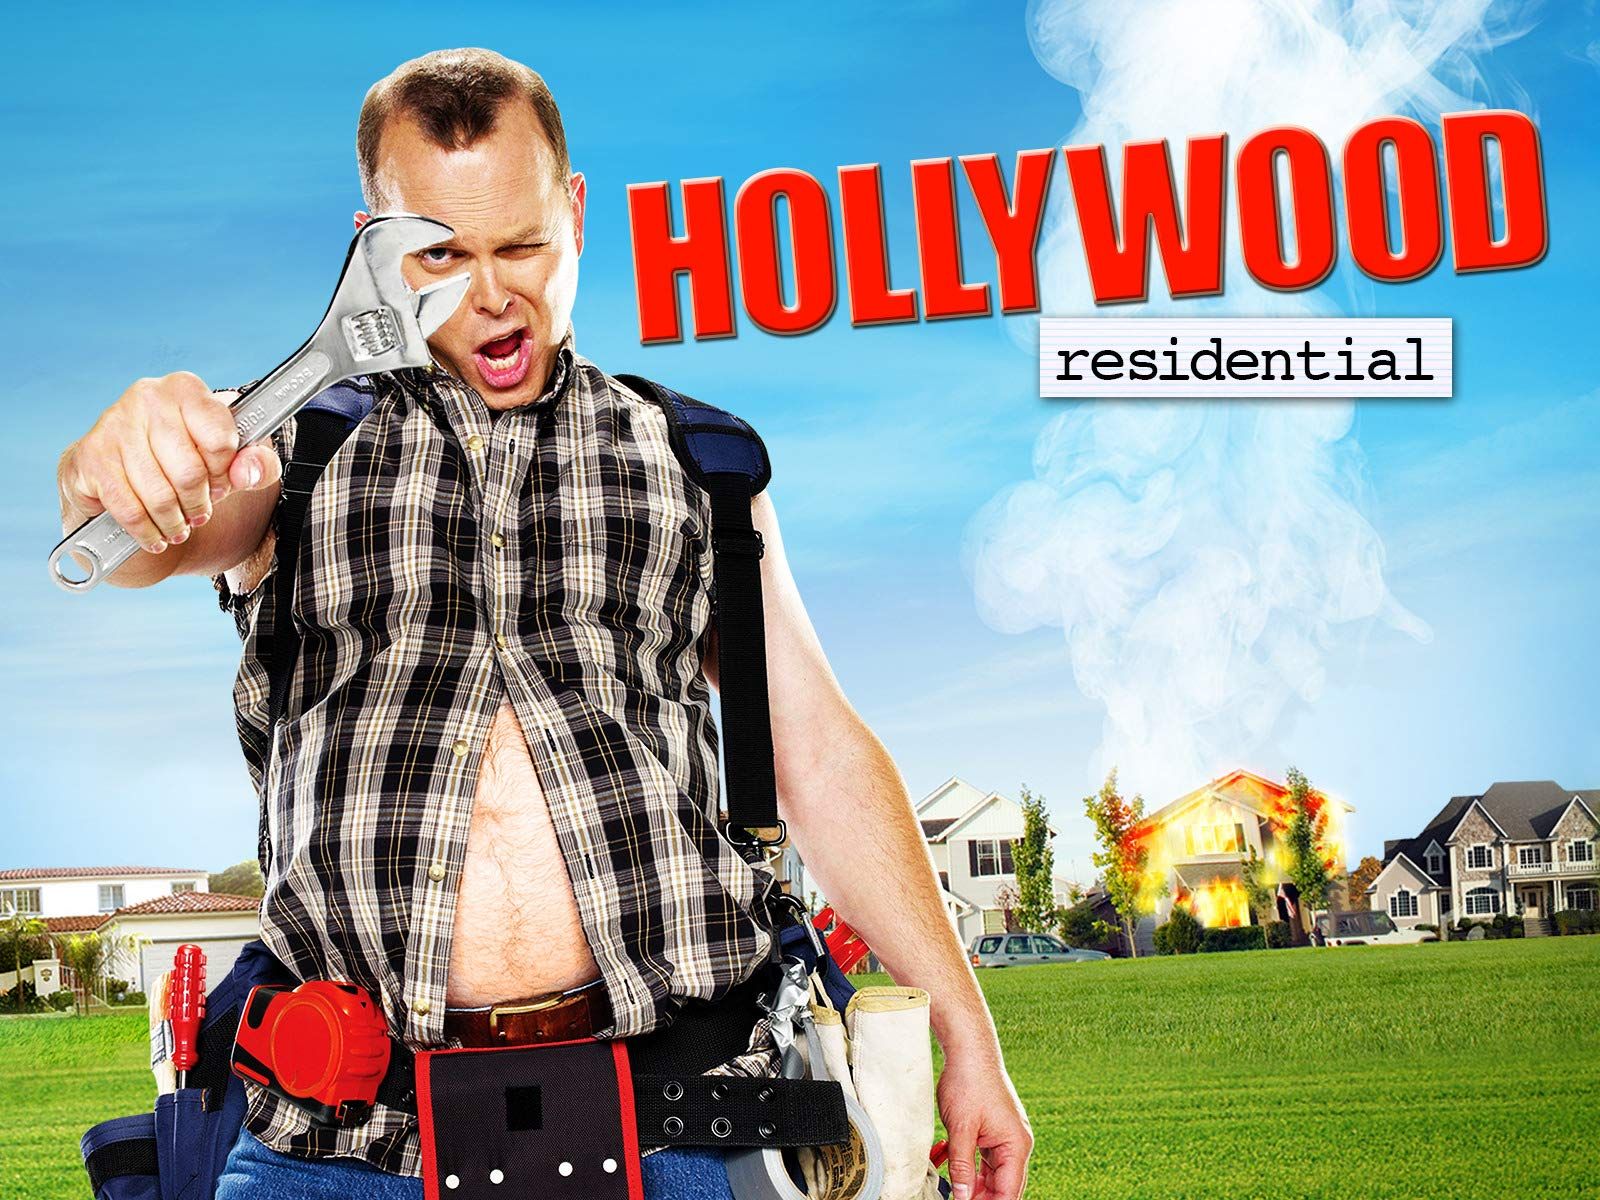 Hollywood Residential on Amazon Prime Video UK